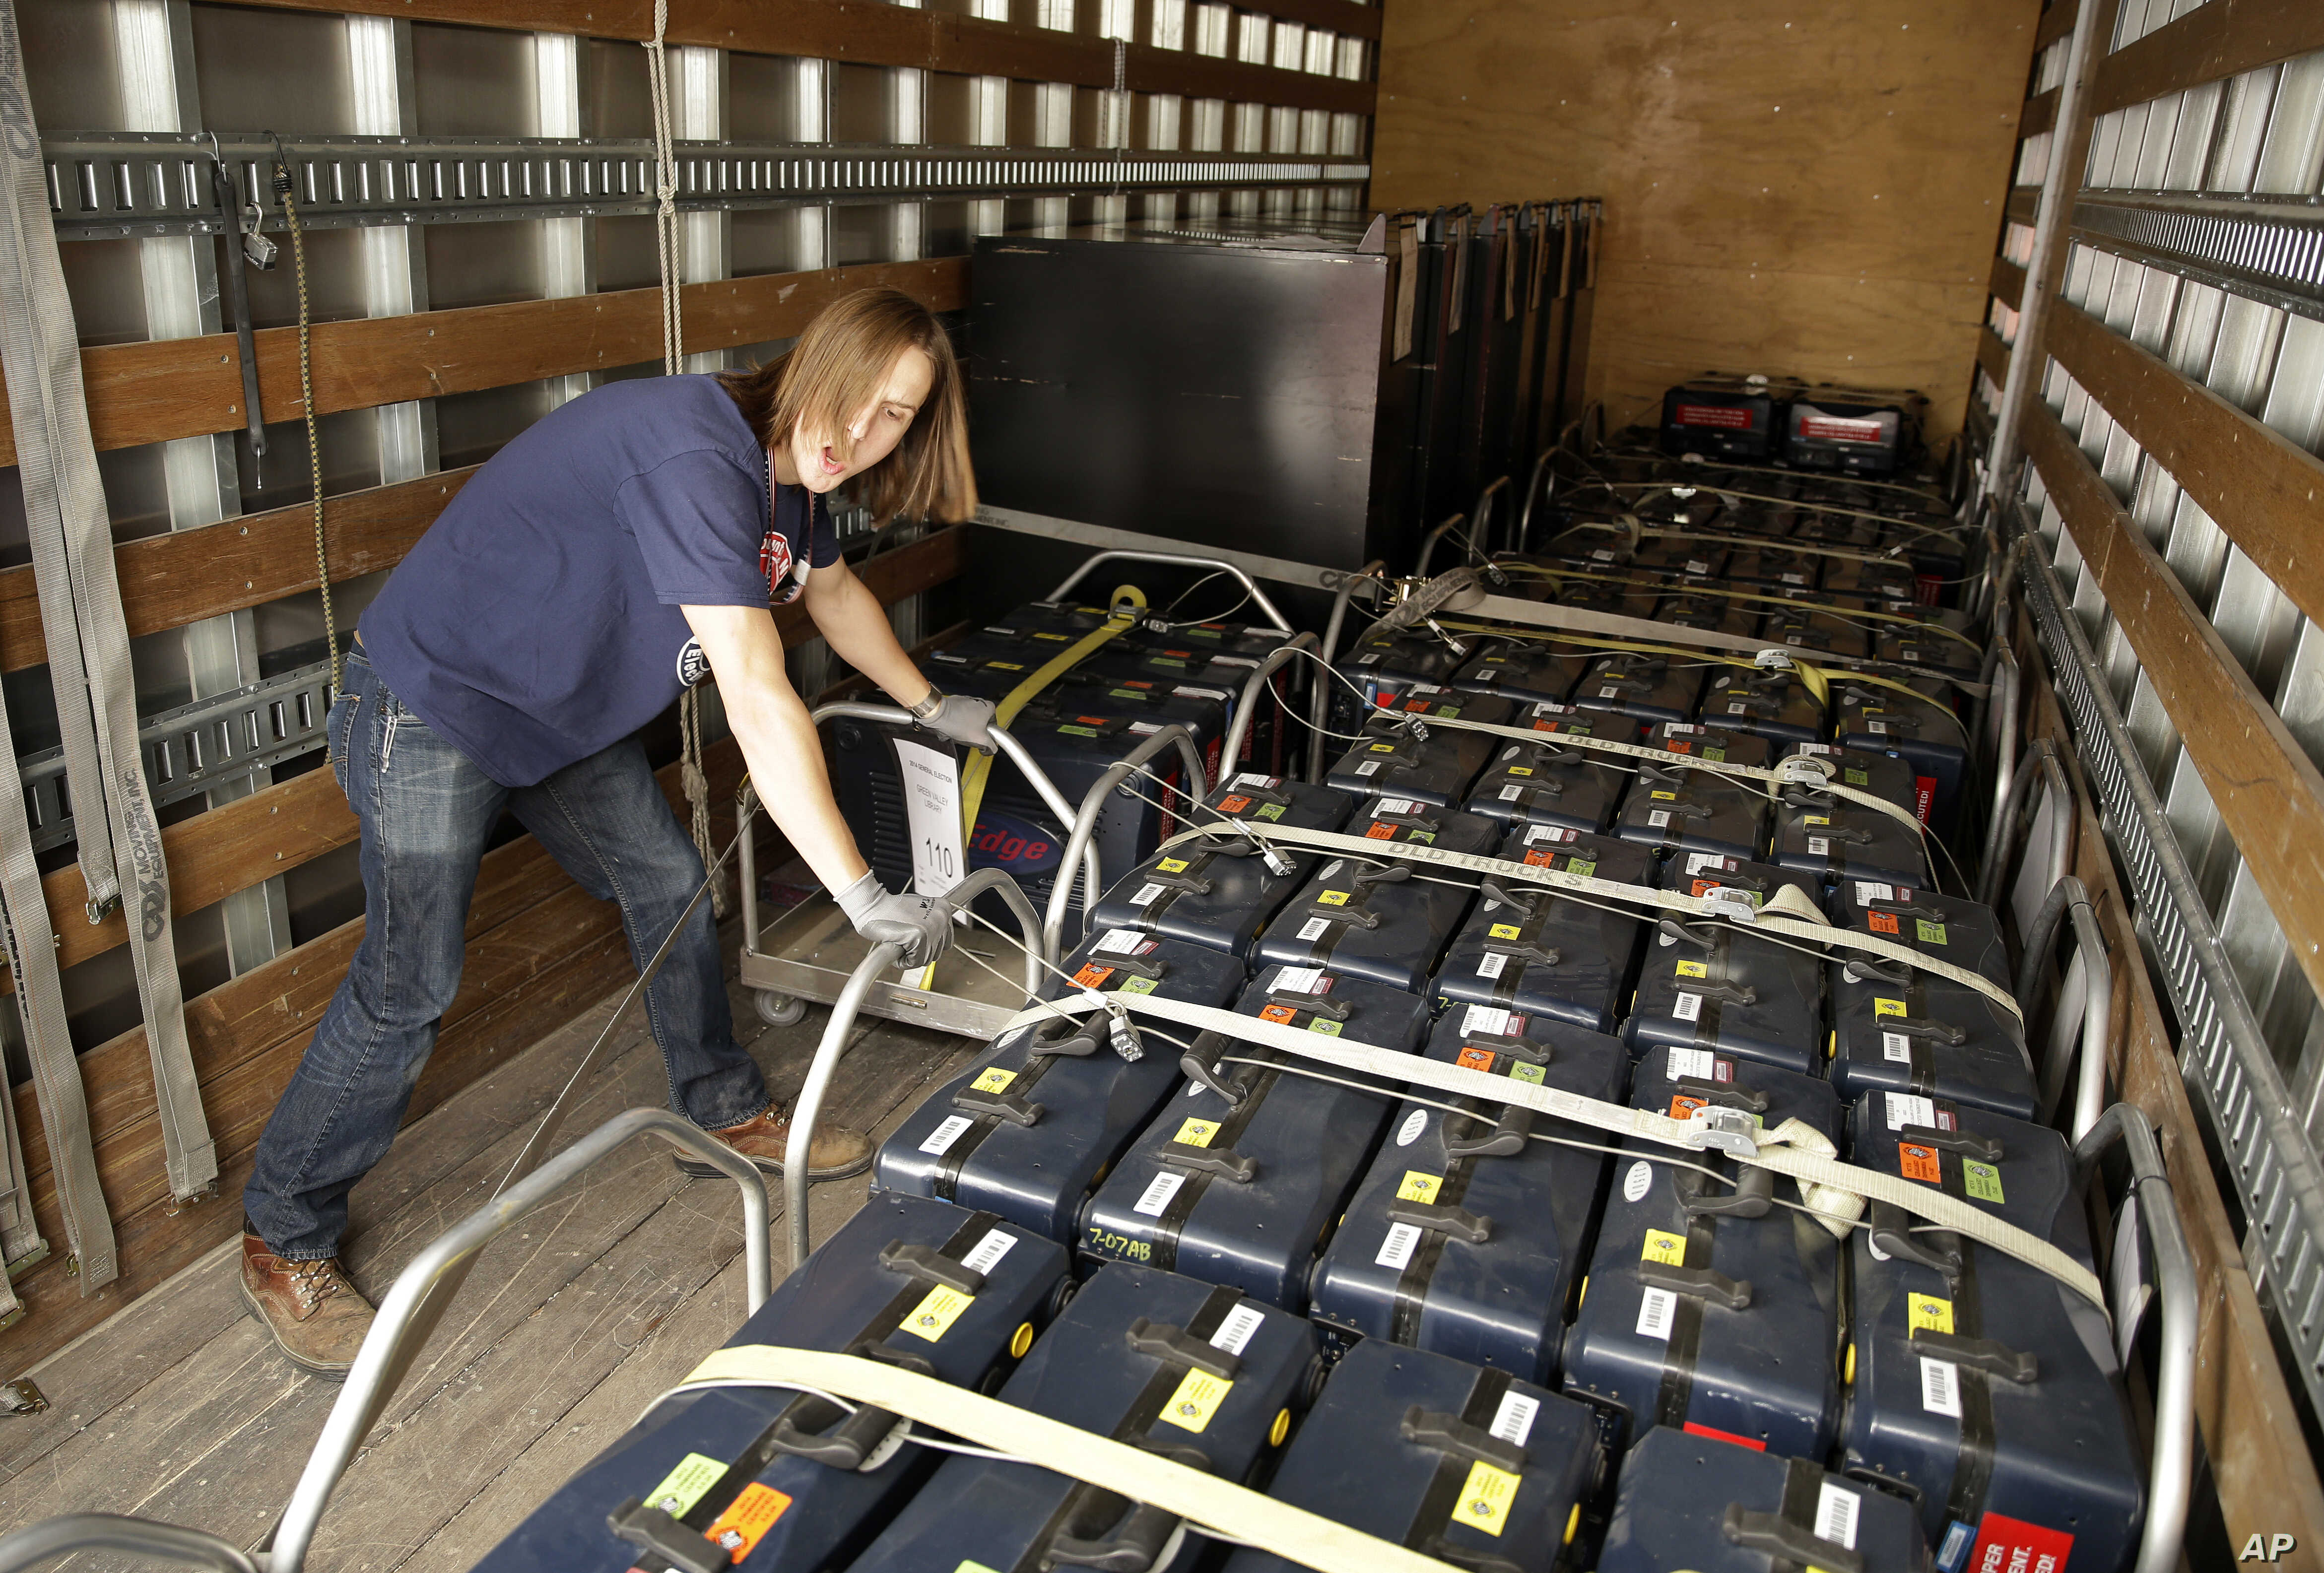 Clark County election worker Bradley Kryst loads voting machines onto a truck at the Clark County Election Warehouse Monday, Nov. 3, 2014, in North Las Vegas, Nev. The machines will be used for midterm elections on Tuesday. (AP Photo/John Locher)